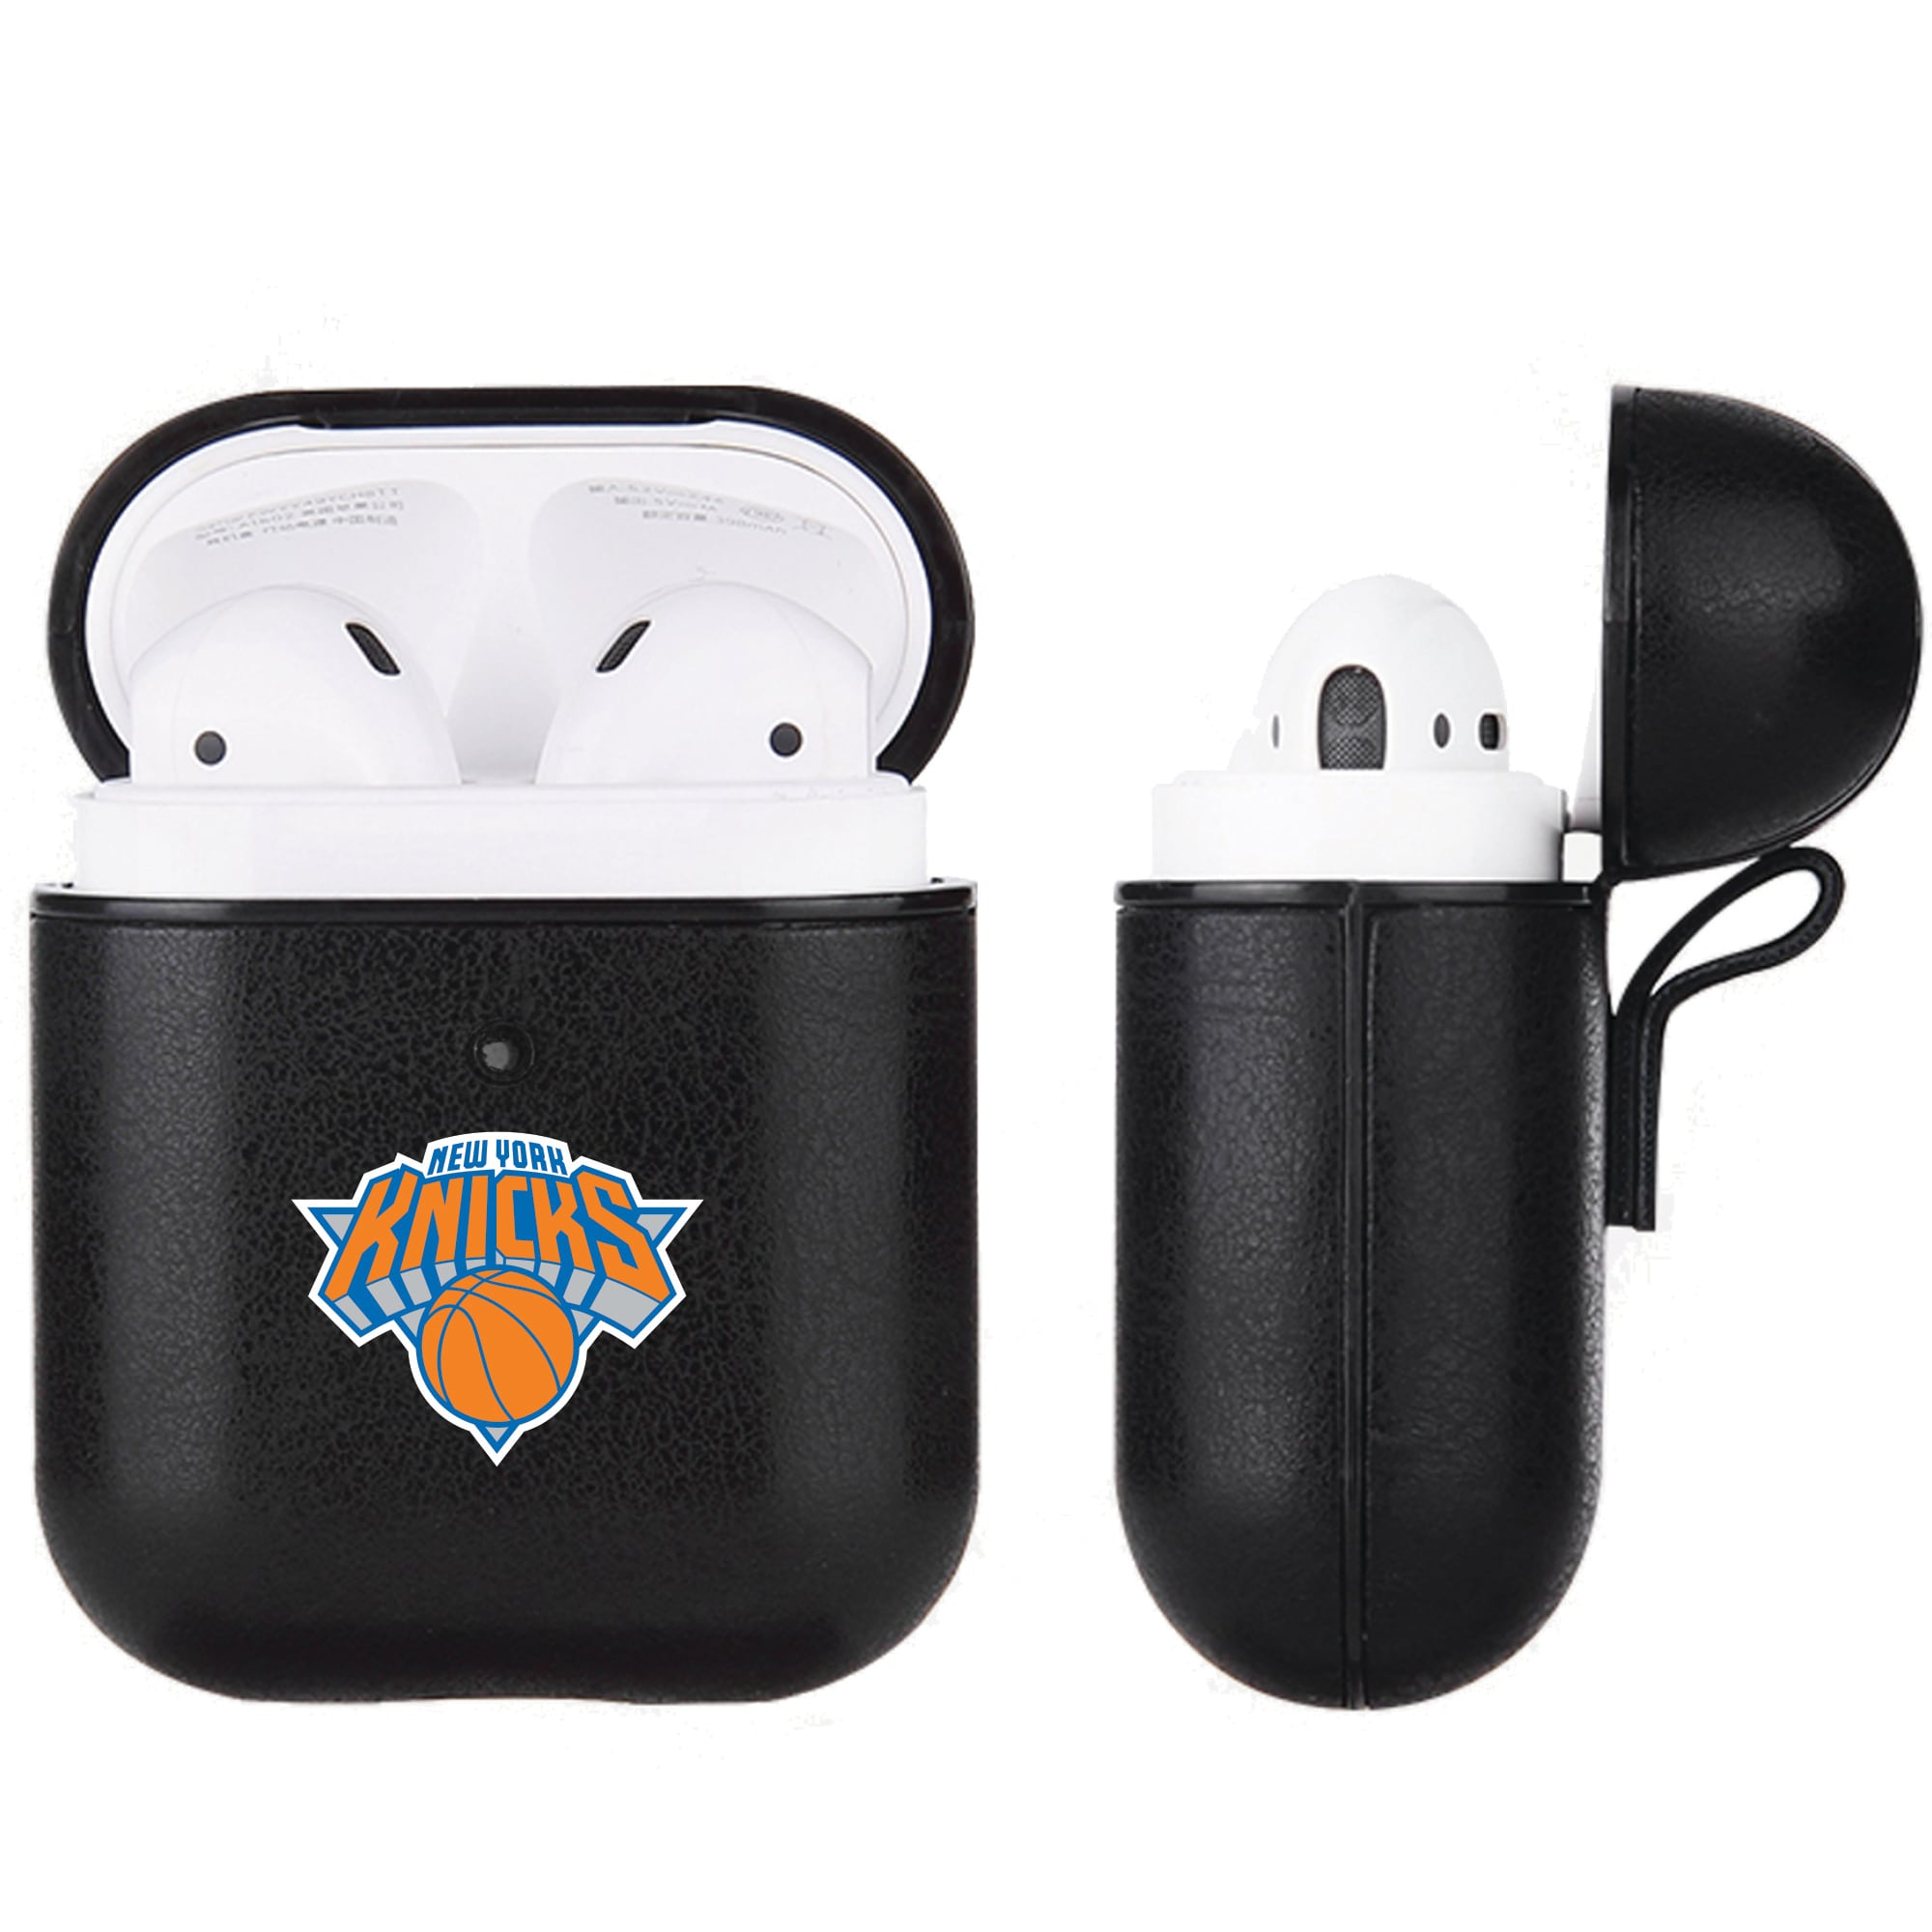 New York Knicks Air Pods Black Leatherette Case